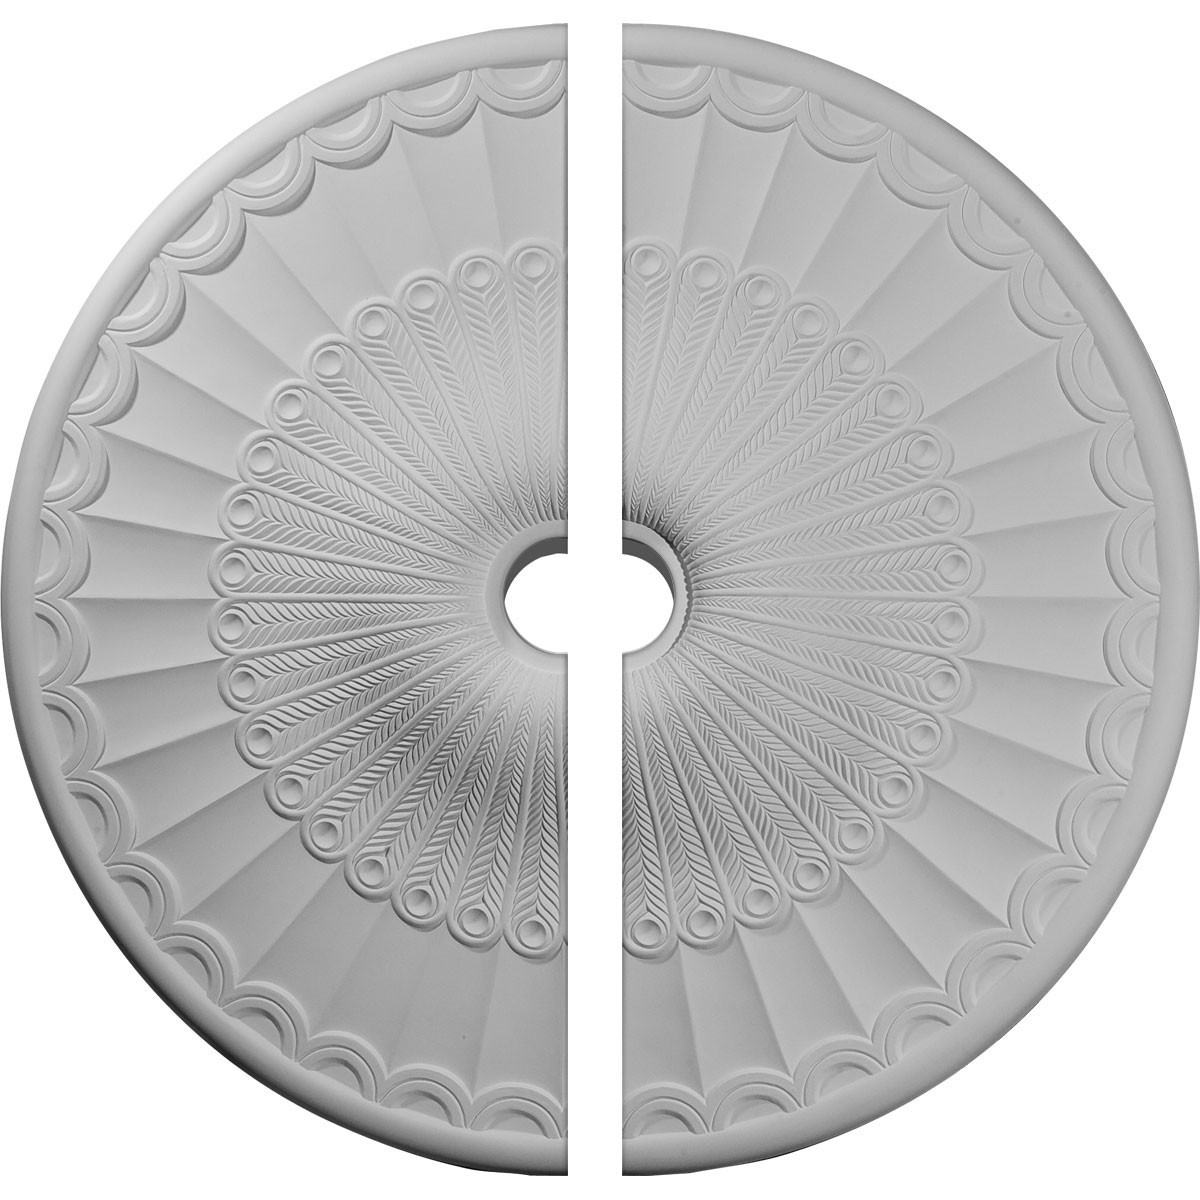 """EM-CM36GL2 - 36 5/8""""OD x 3 5/8""""ID x 2 3/8""""P Galveston Ceiling Medallion, Two Piece (Fits Canopies up to 4 3/4"""")"""